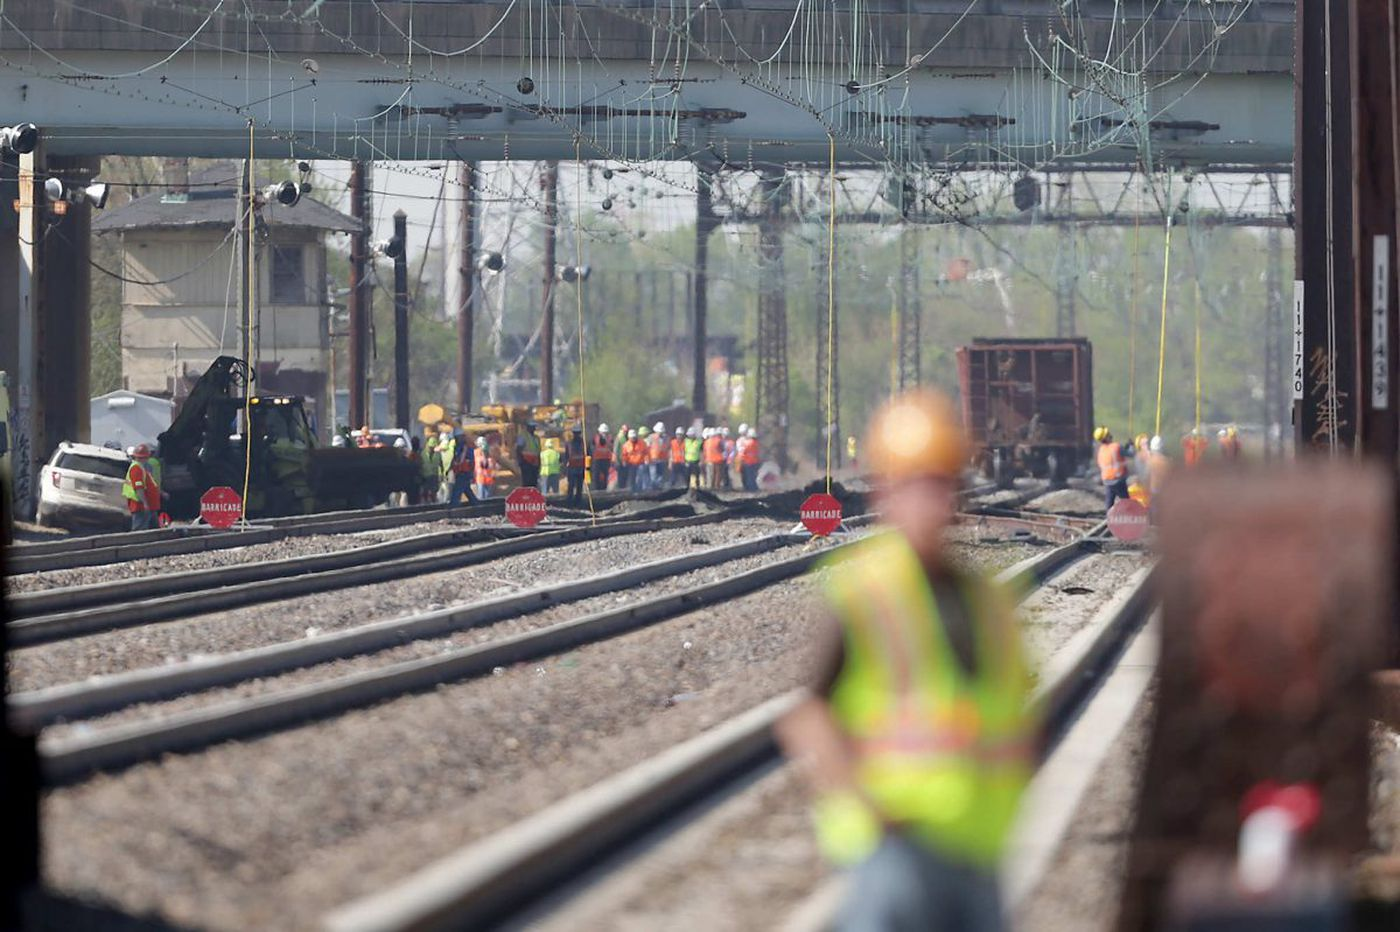 Work to repair Northeast Corridor tracks damaged in derailment could take up to month, officials say